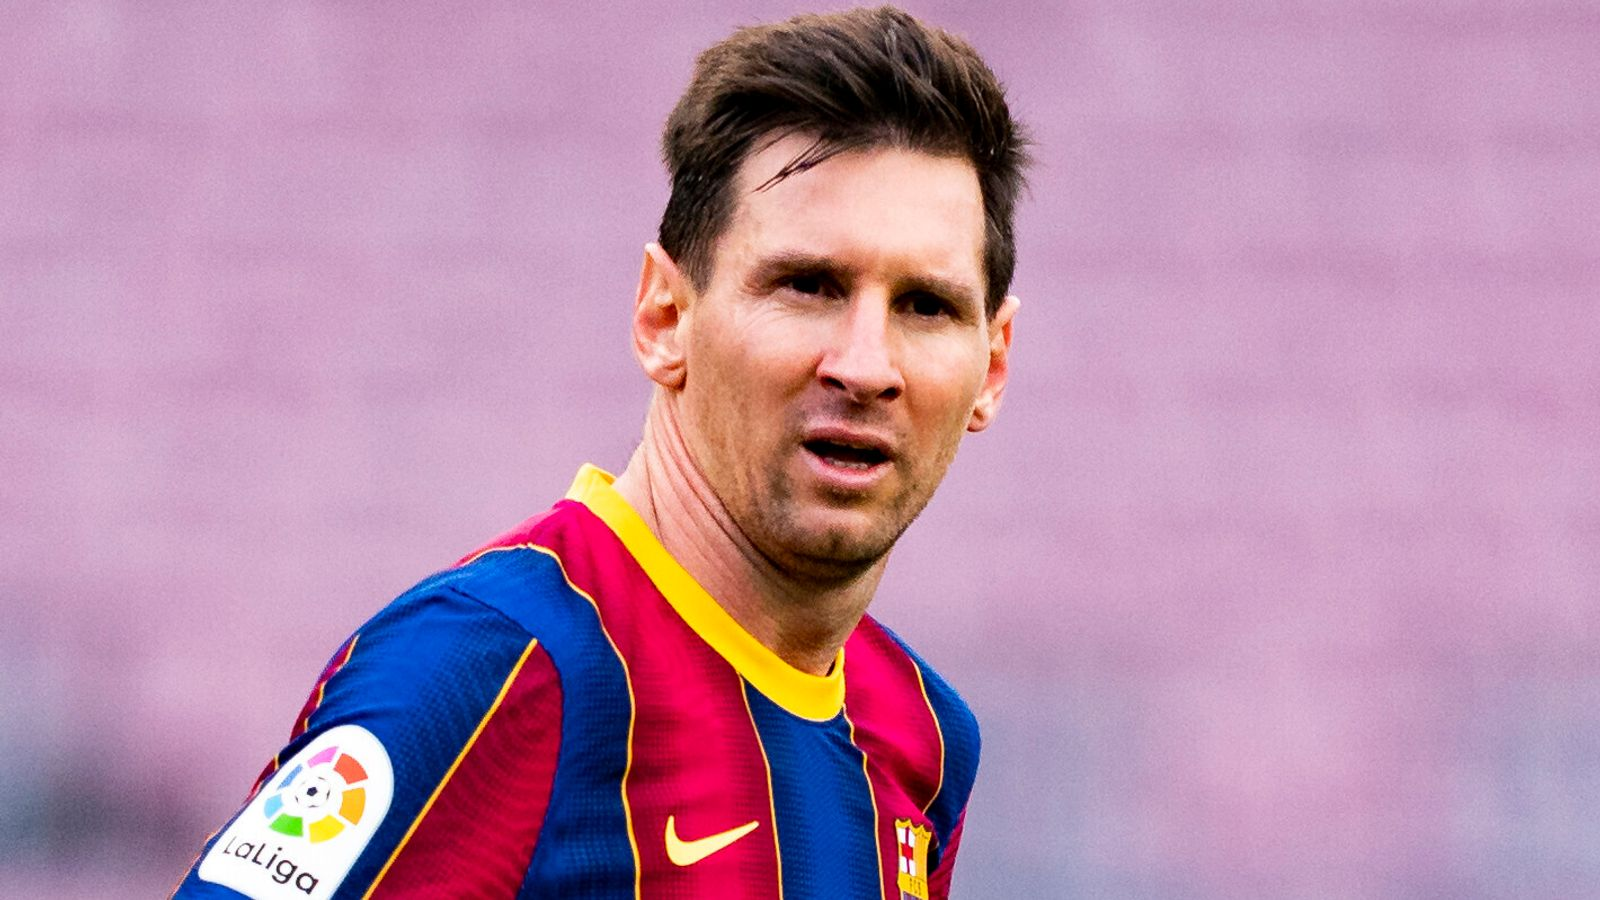 Lionel Messi to leave Barcelona after club fail to fulfil new contract agreement